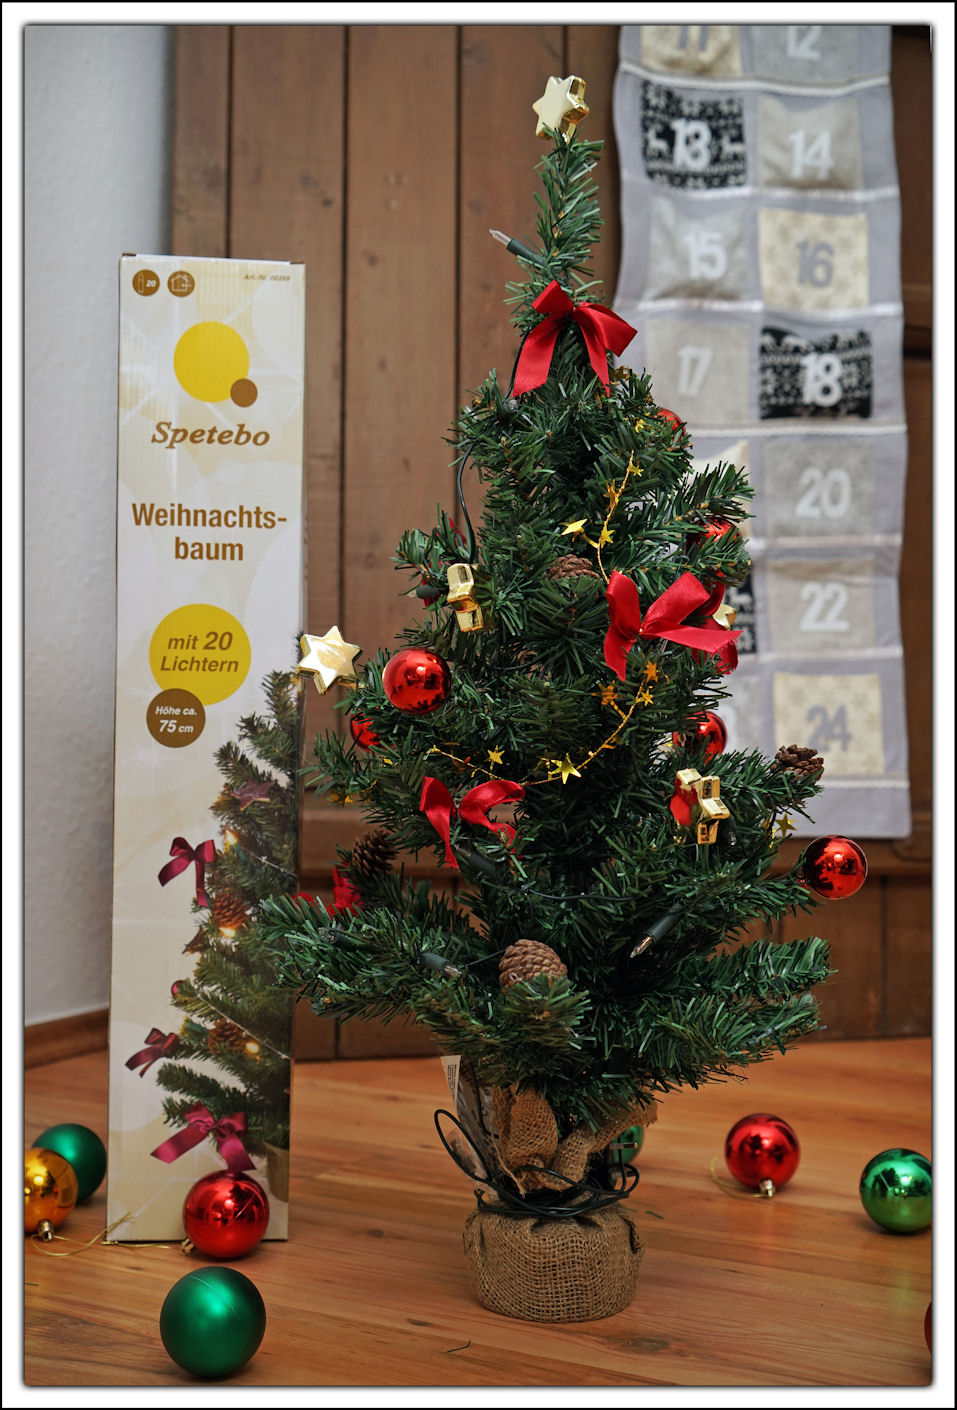 weihnachtsbaum geschm ckt 75 cm 20er lichterkette tannenbaum christbaum baum ebay. Black Bedroom Furniture Sets. Home Design Ideas